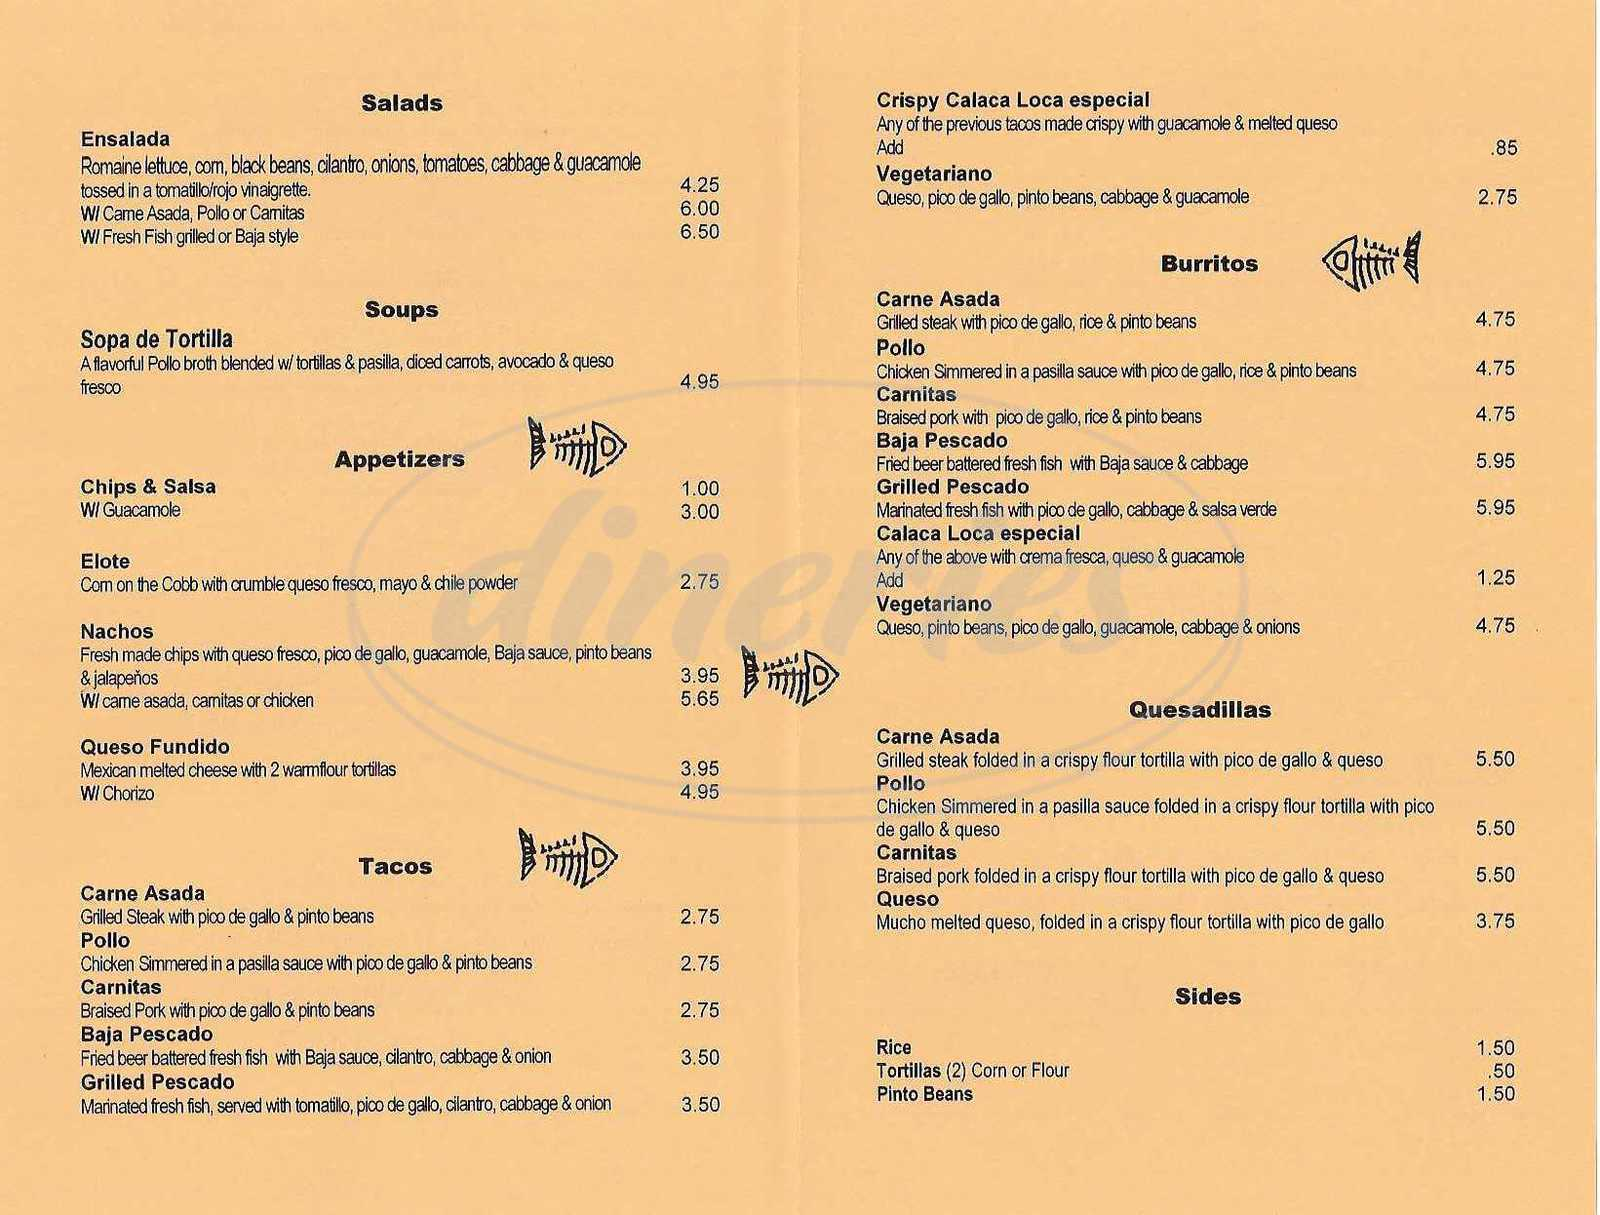 menu for La Calaca Loca